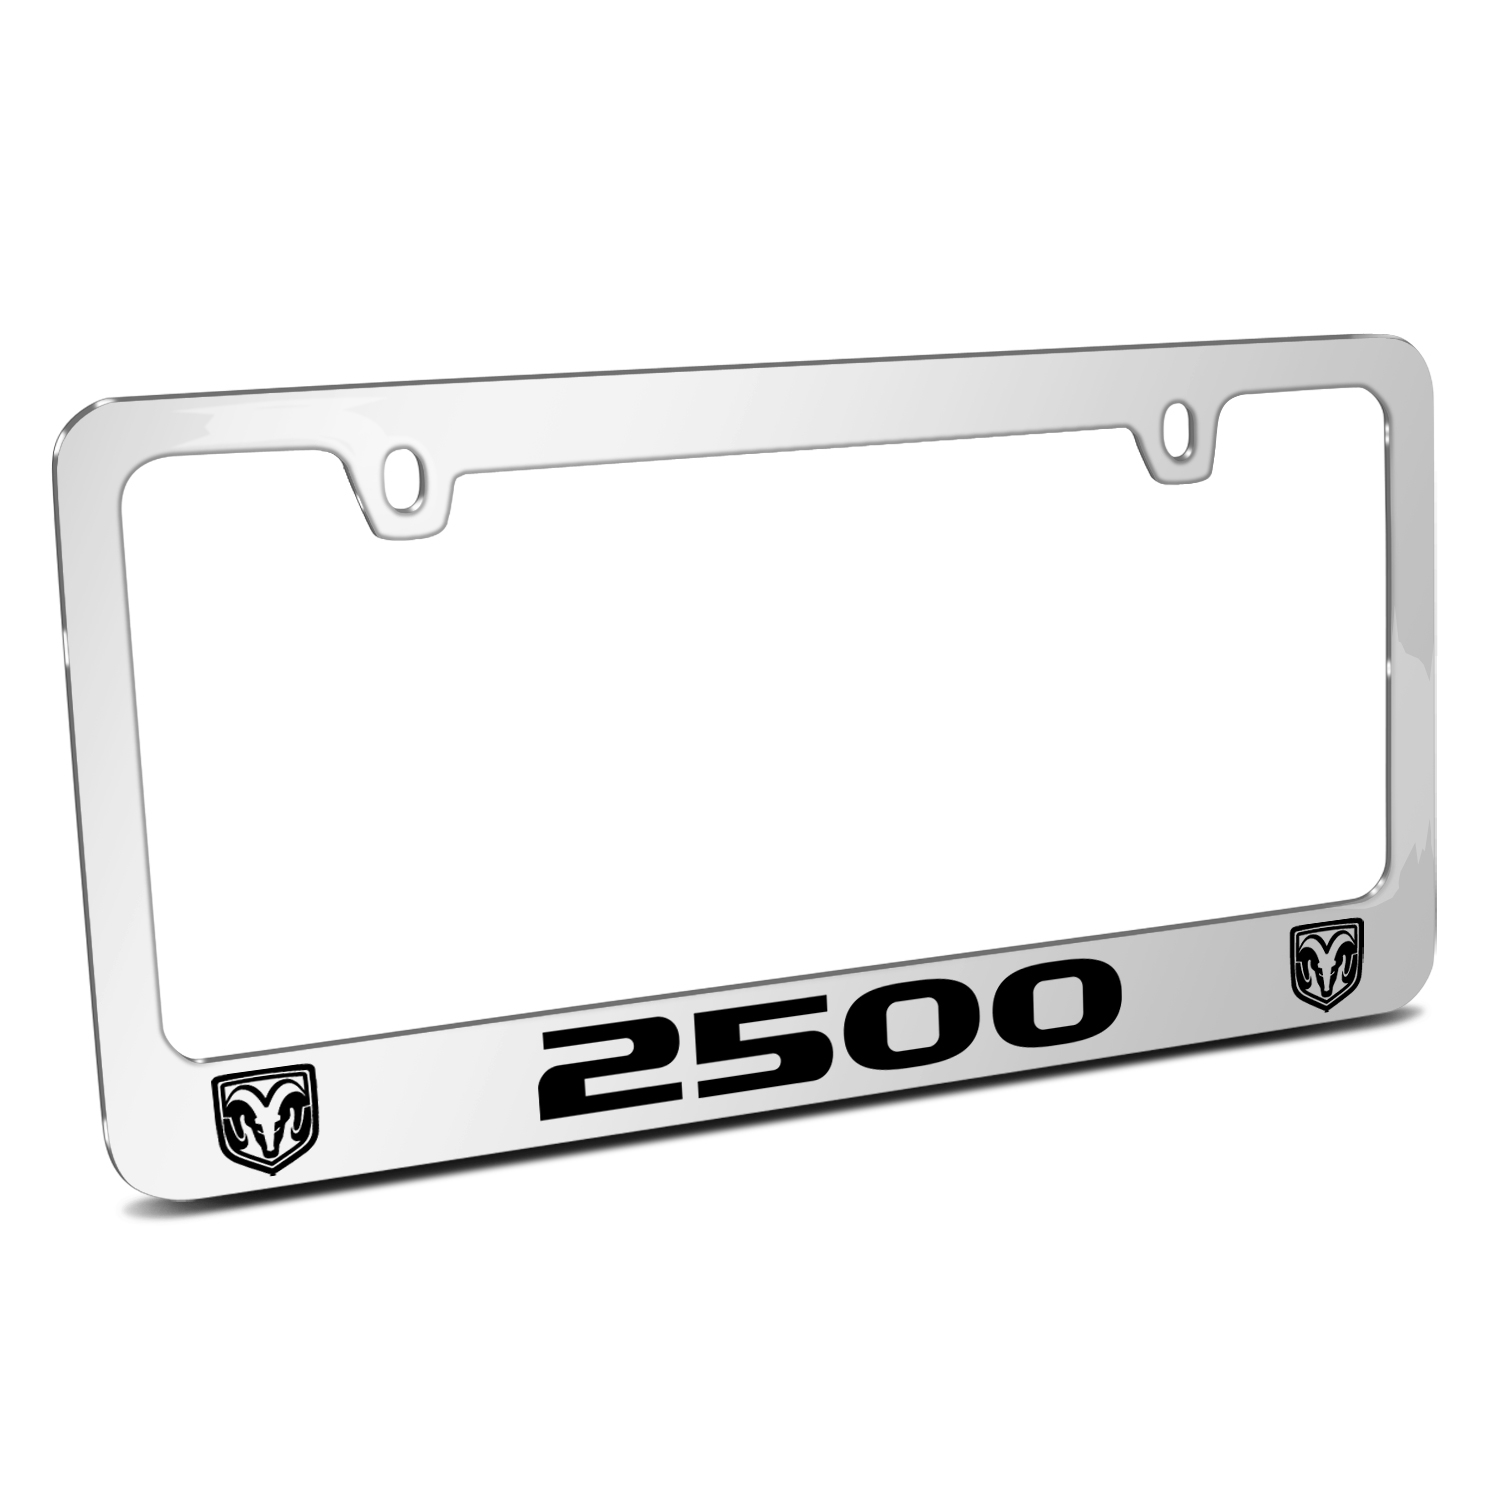 RAM 2500 Dual Logos Mirror Chrome Metal License Plate Frame